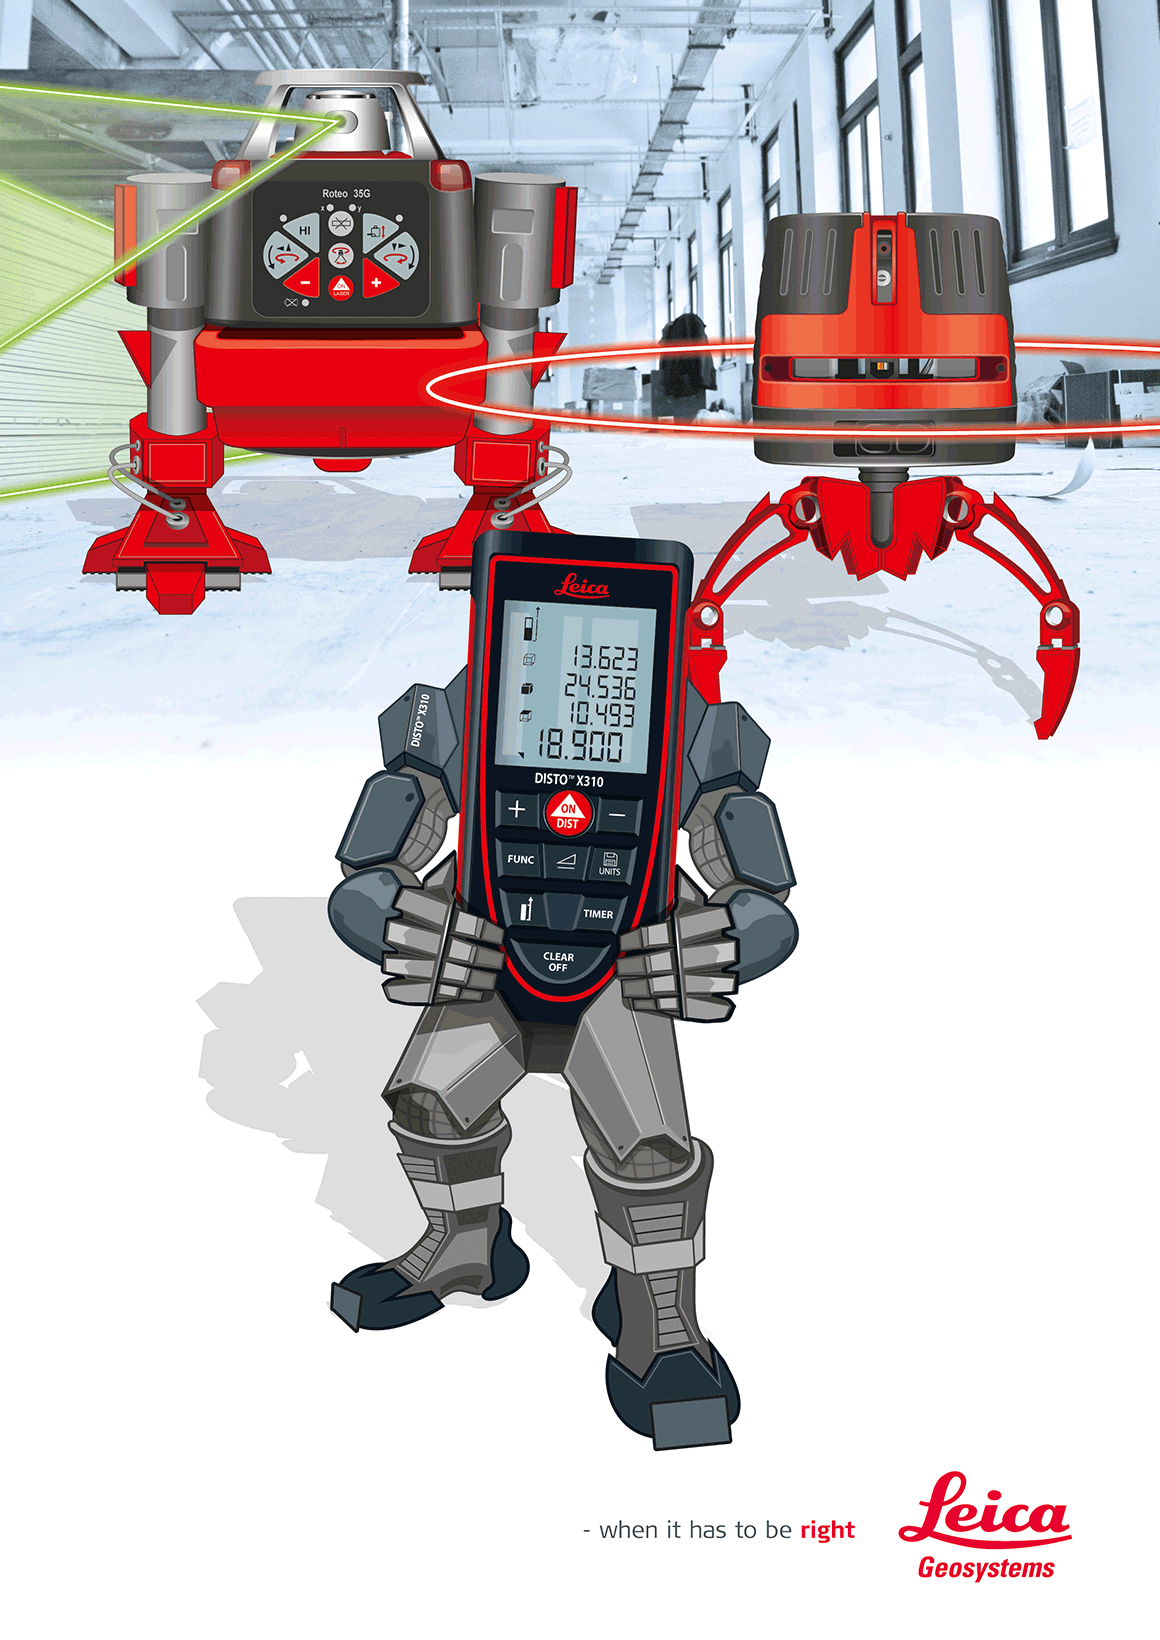 Graphic Design and Illustration for Leica Geosystems